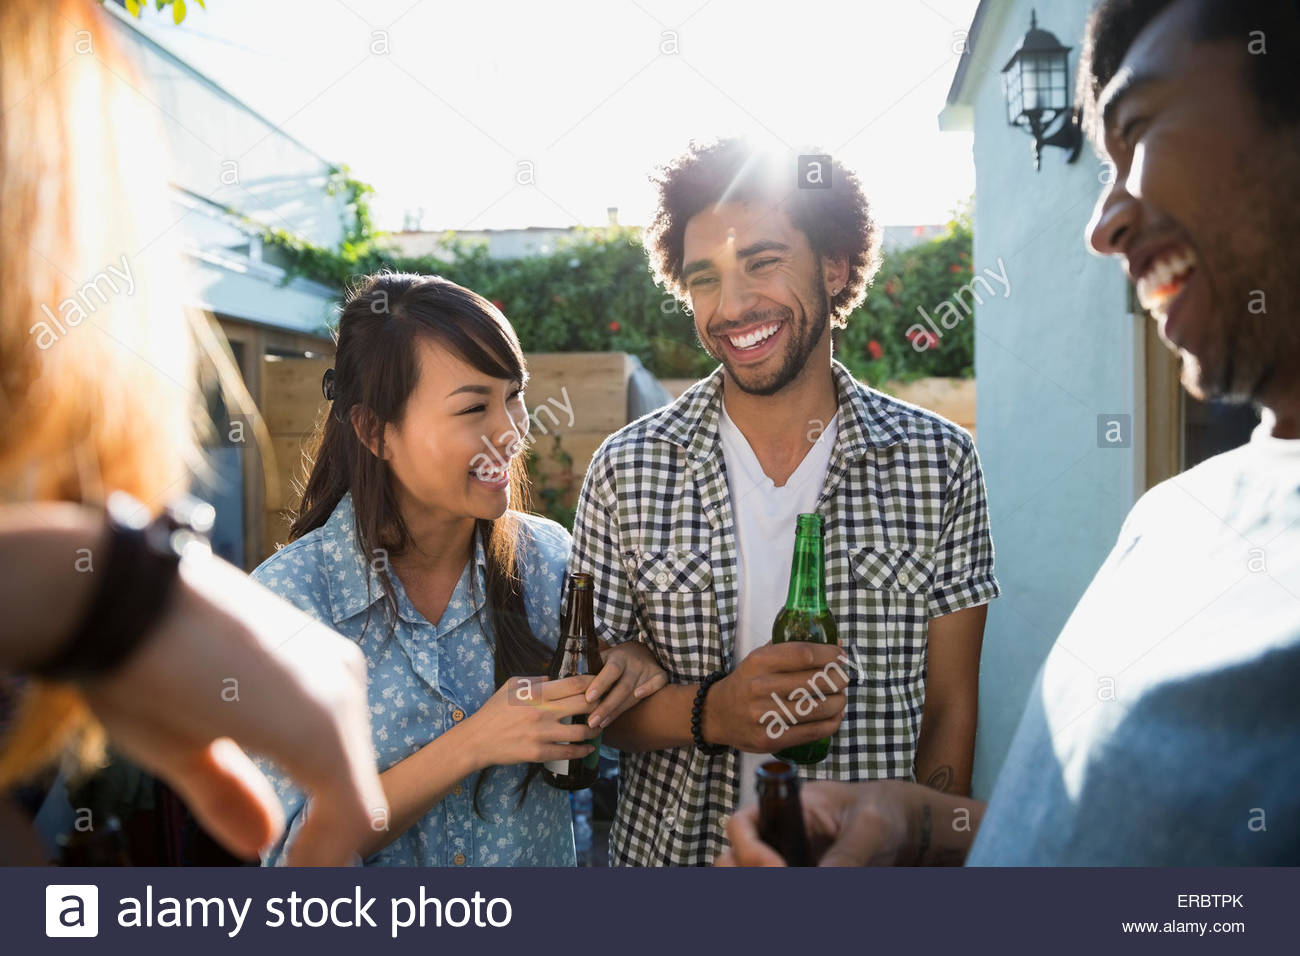 Laughing friends drinking beer on sunny patio - Stock Image